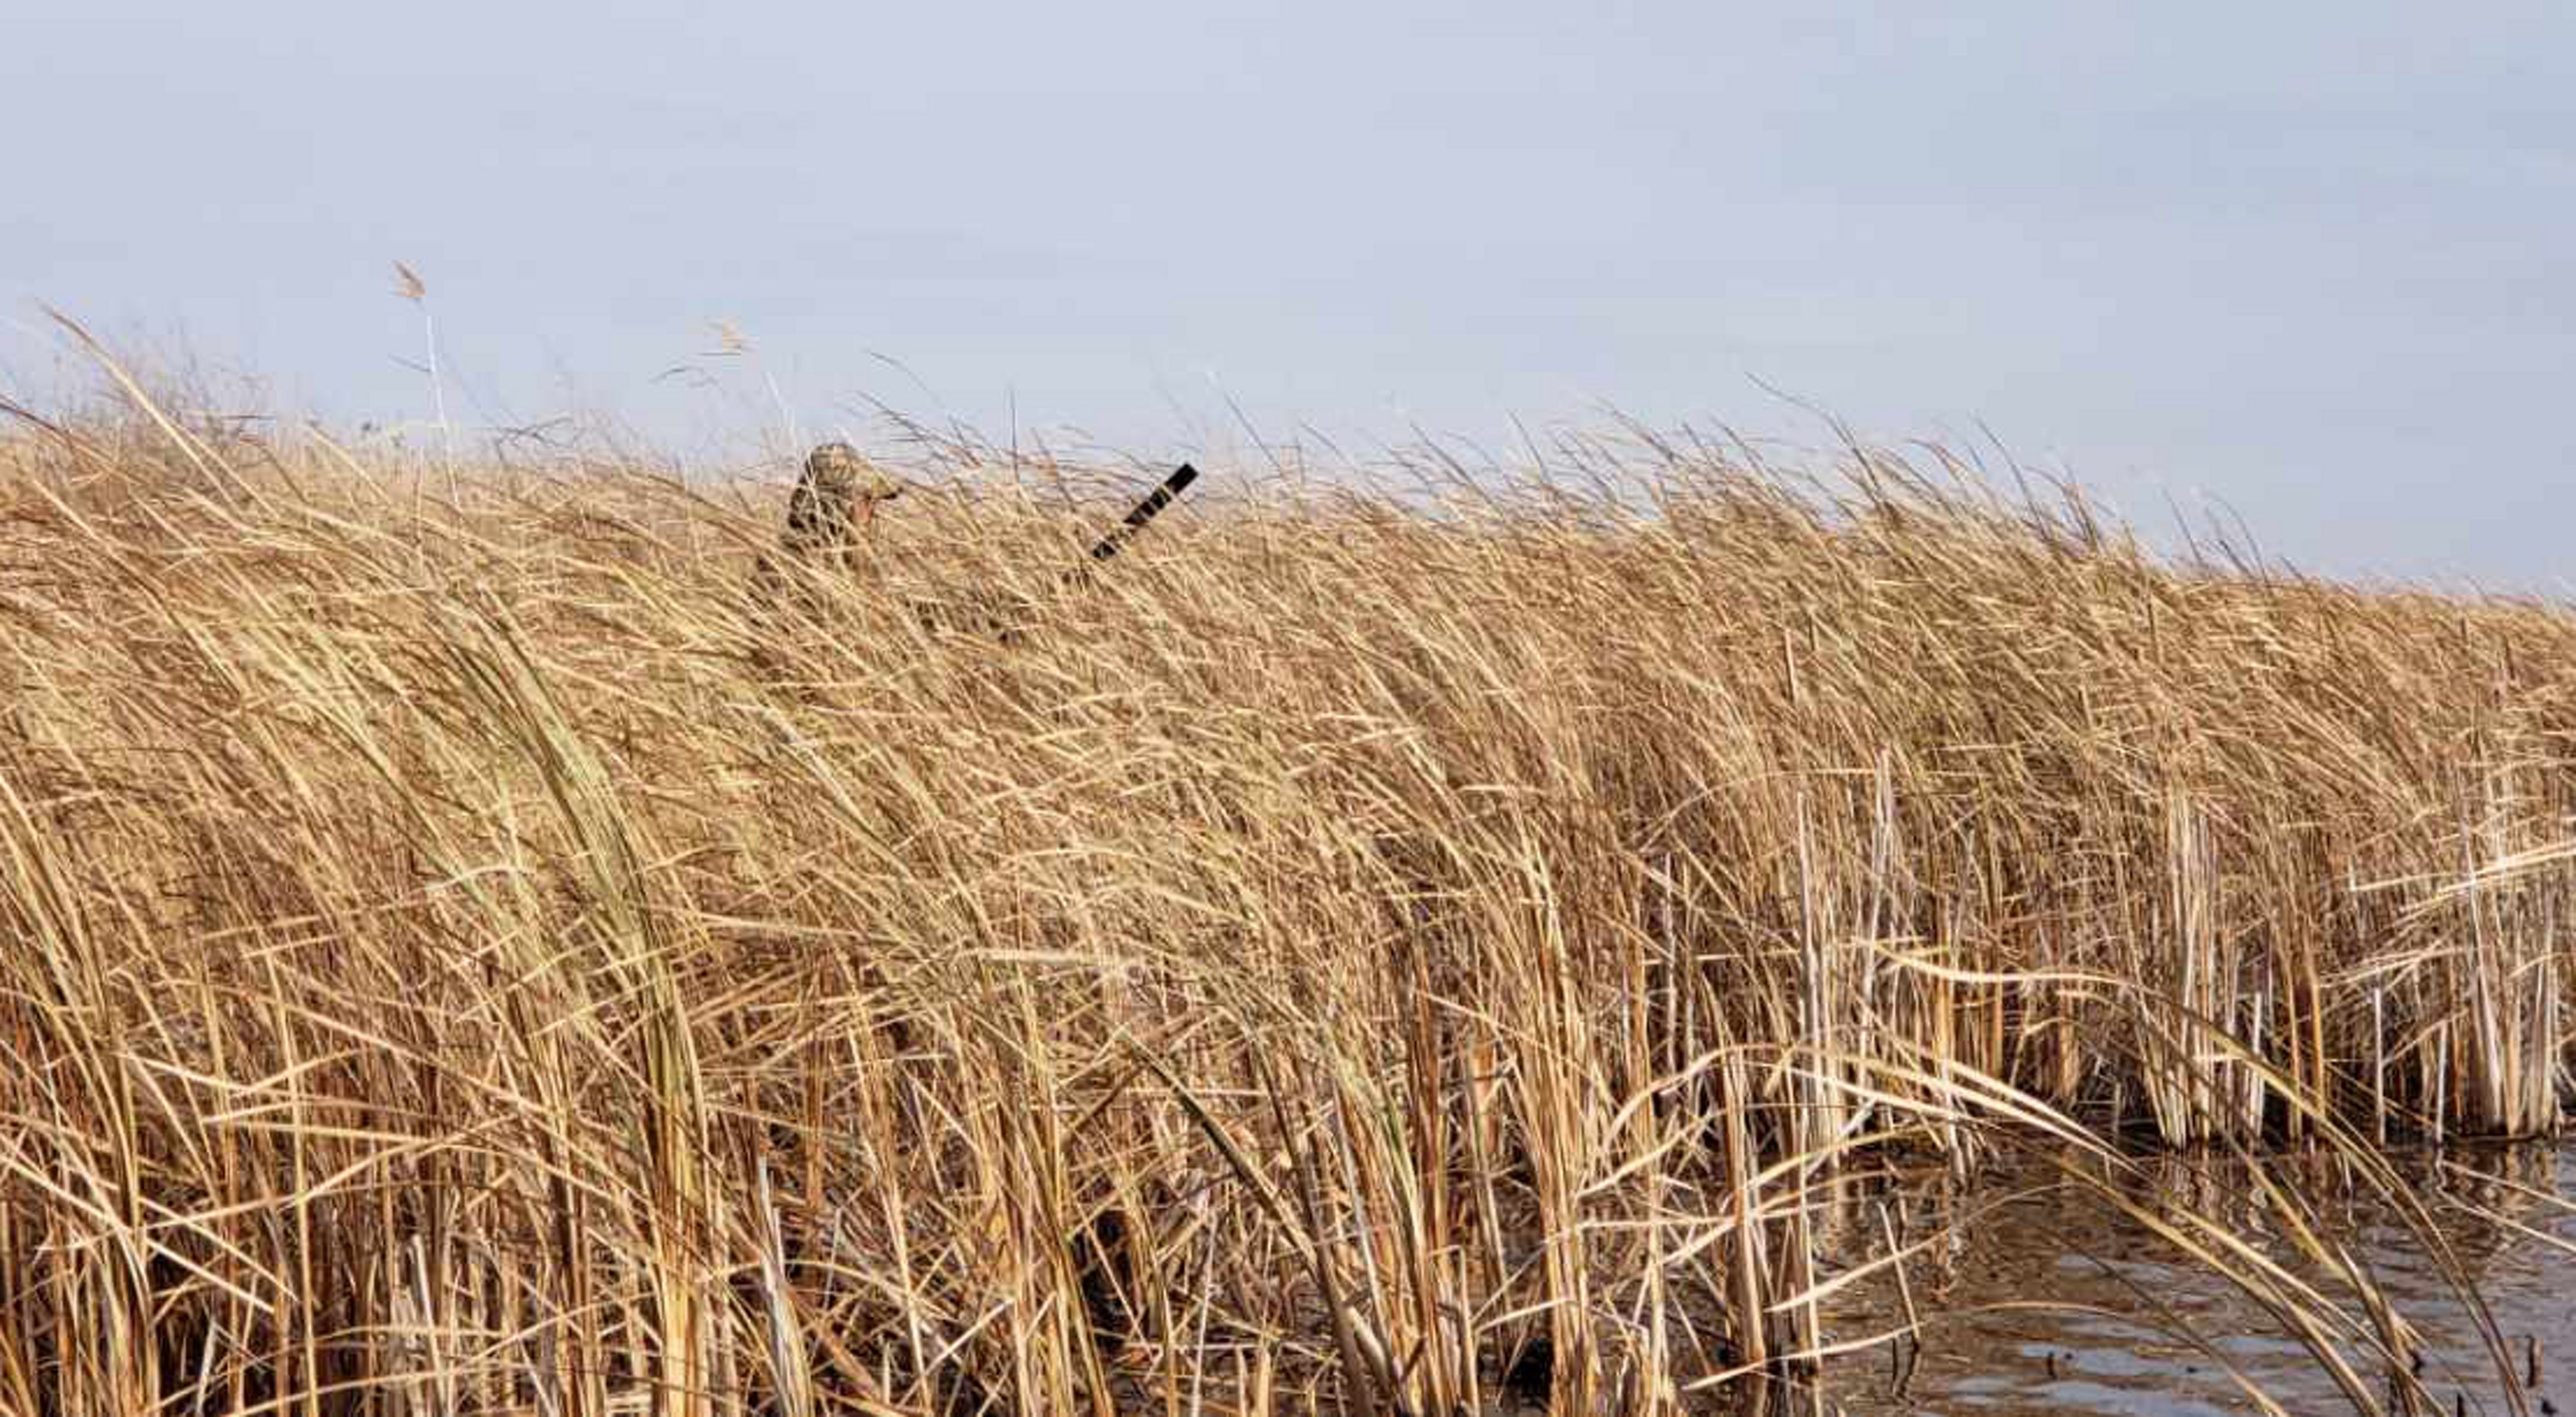 Hunter walking through tall grasses with a rifle in hand.